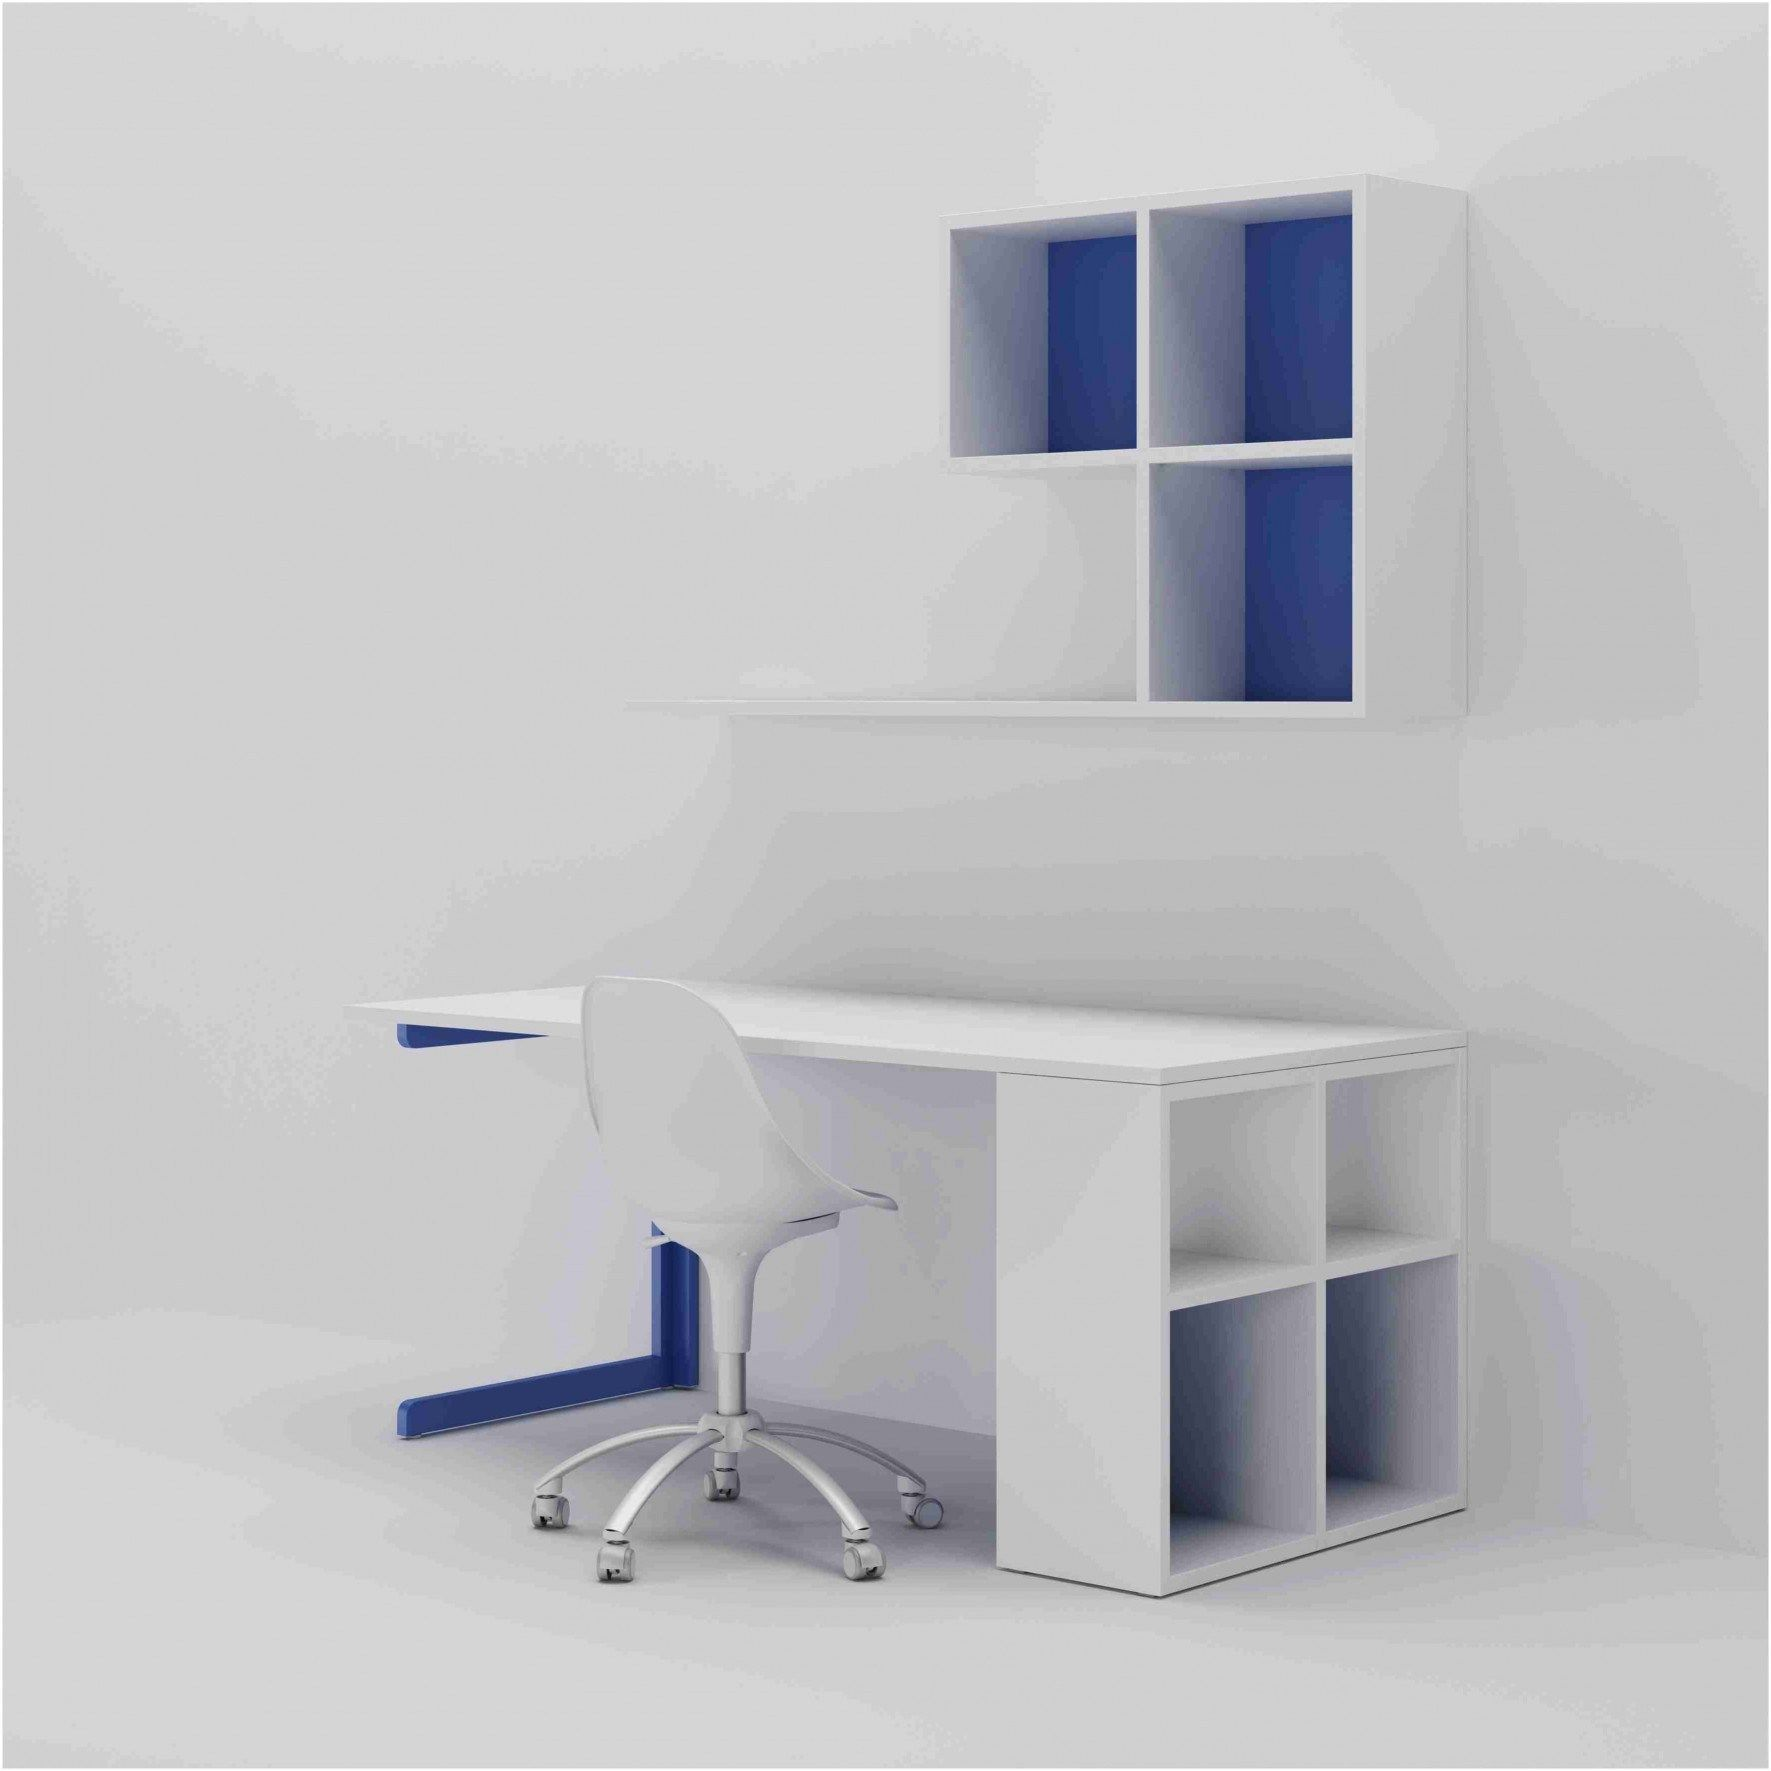 Inspirational Coiffeuse Fille Pas Cher Interior Design Bedroom Room Hairdressing Chairs